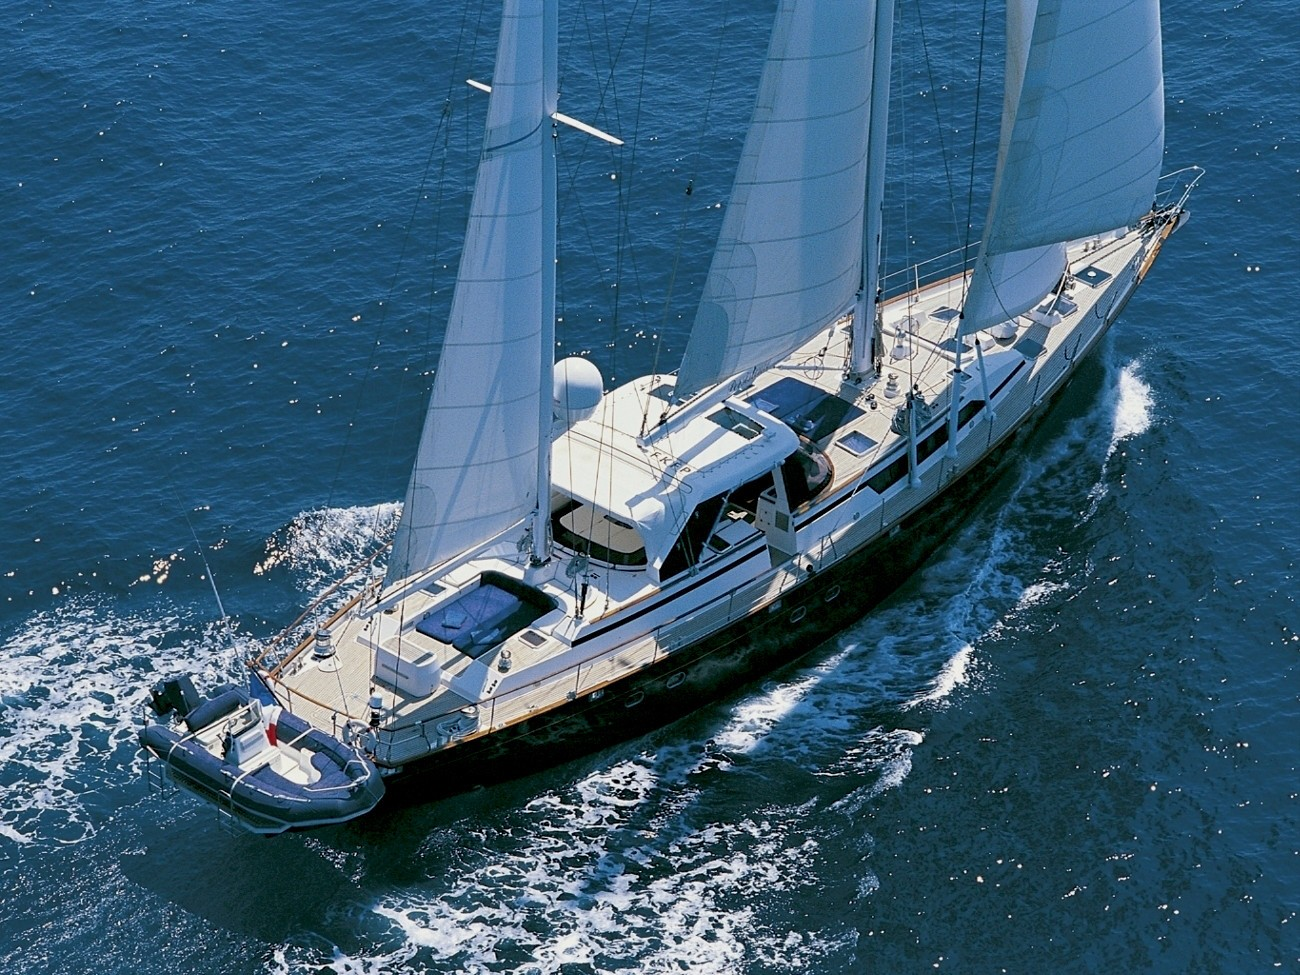 The 26m Yacht PERSISTENCE